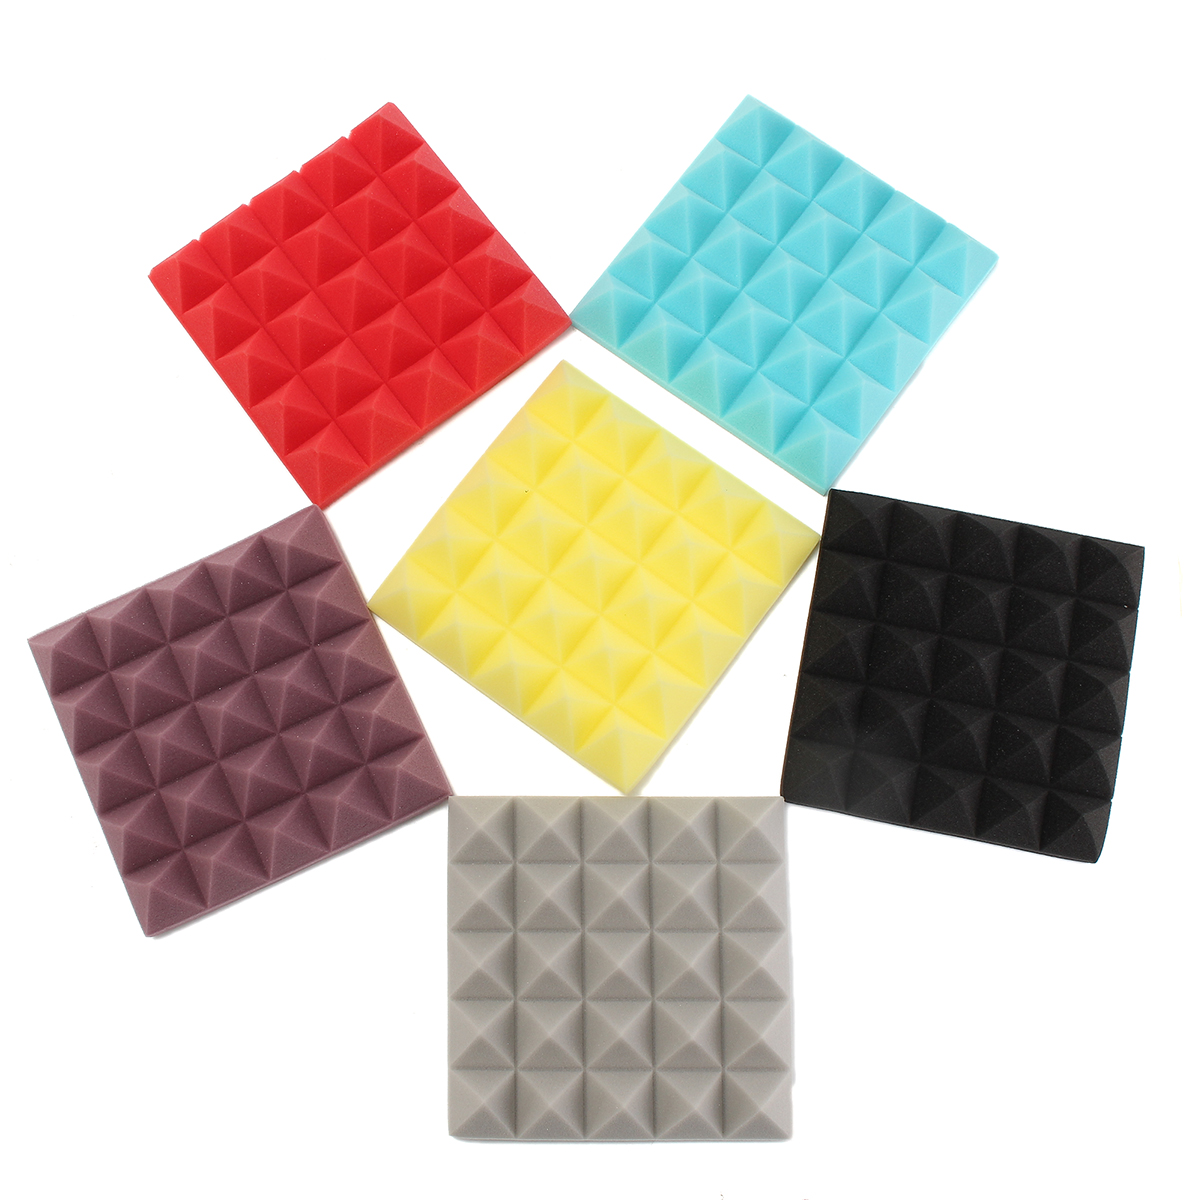 Soundproof foam sound stop acoustic absorption for studio for Soundproof foam